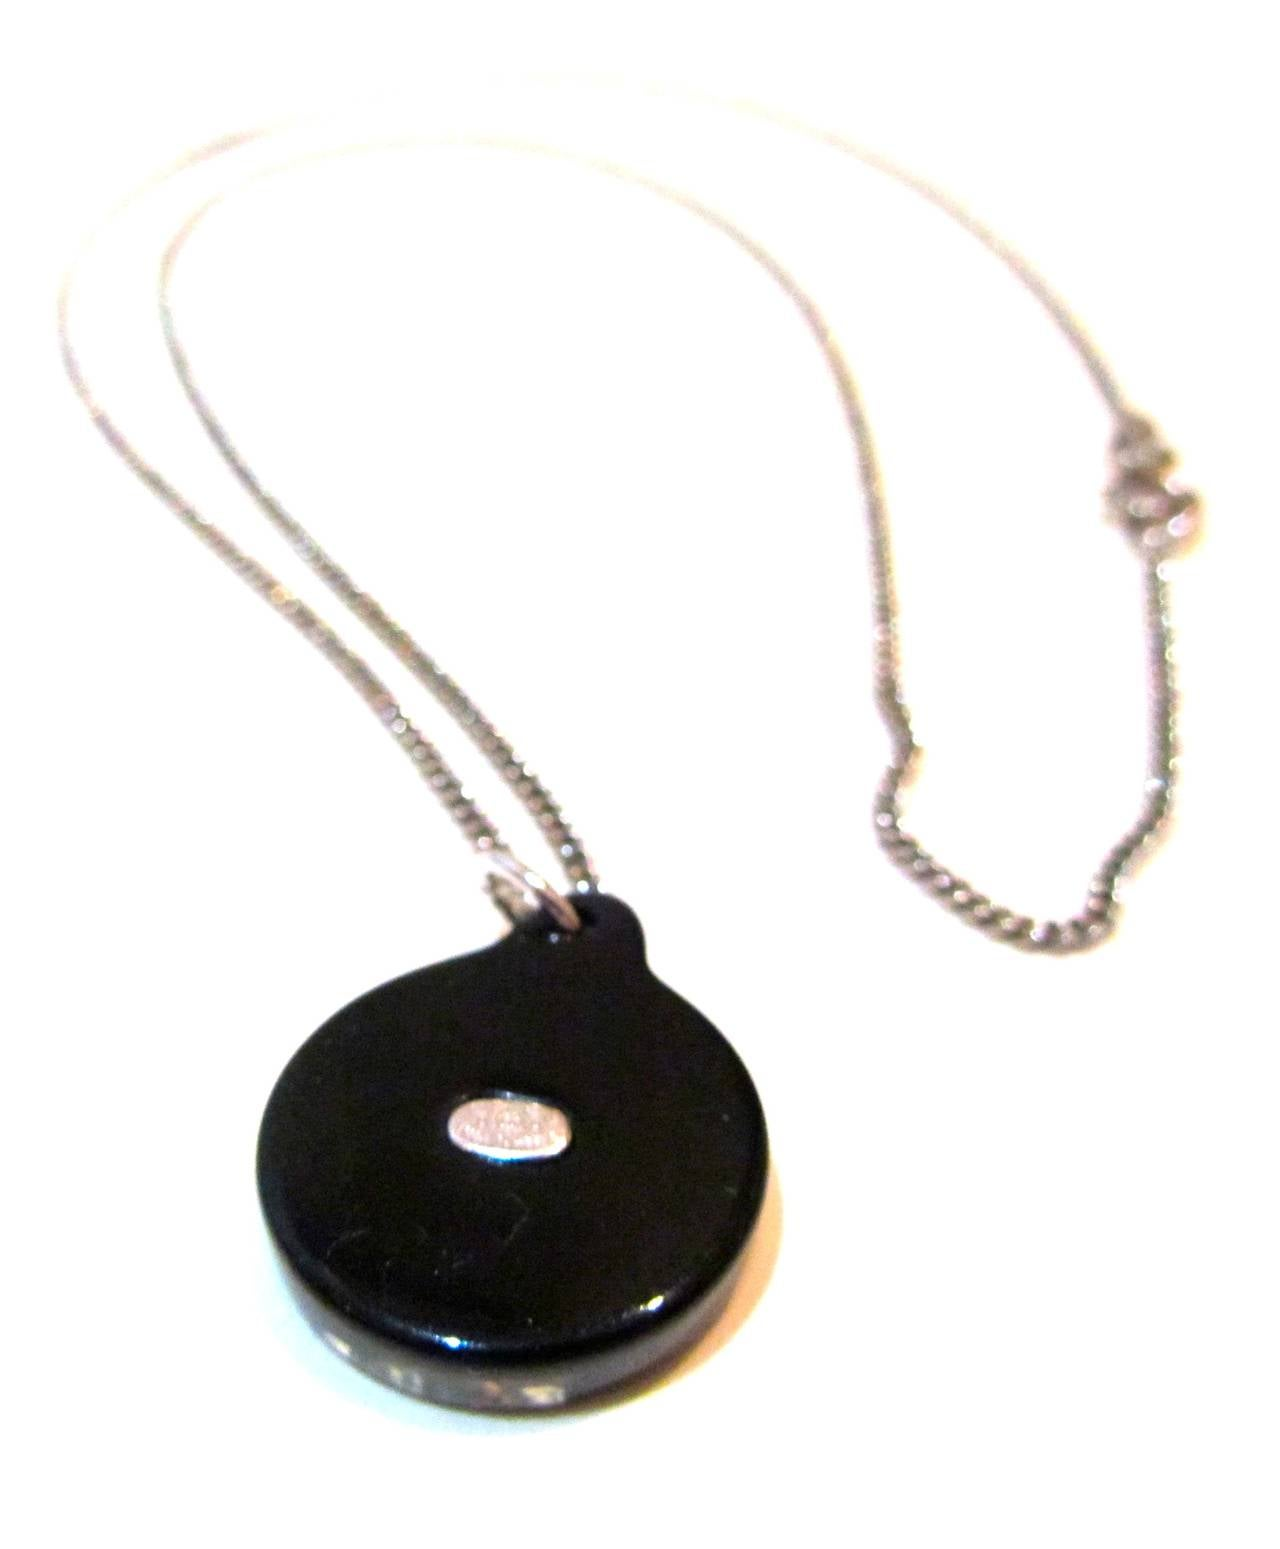 Beautiful Chanel necklace made of black and clear resin. Embedded in the charm is a crystal Chanel CC logo. The chain of the necklace has a silver tone and measures a total of 24 inches. The charm itself is 0.6 inches in diameter. 